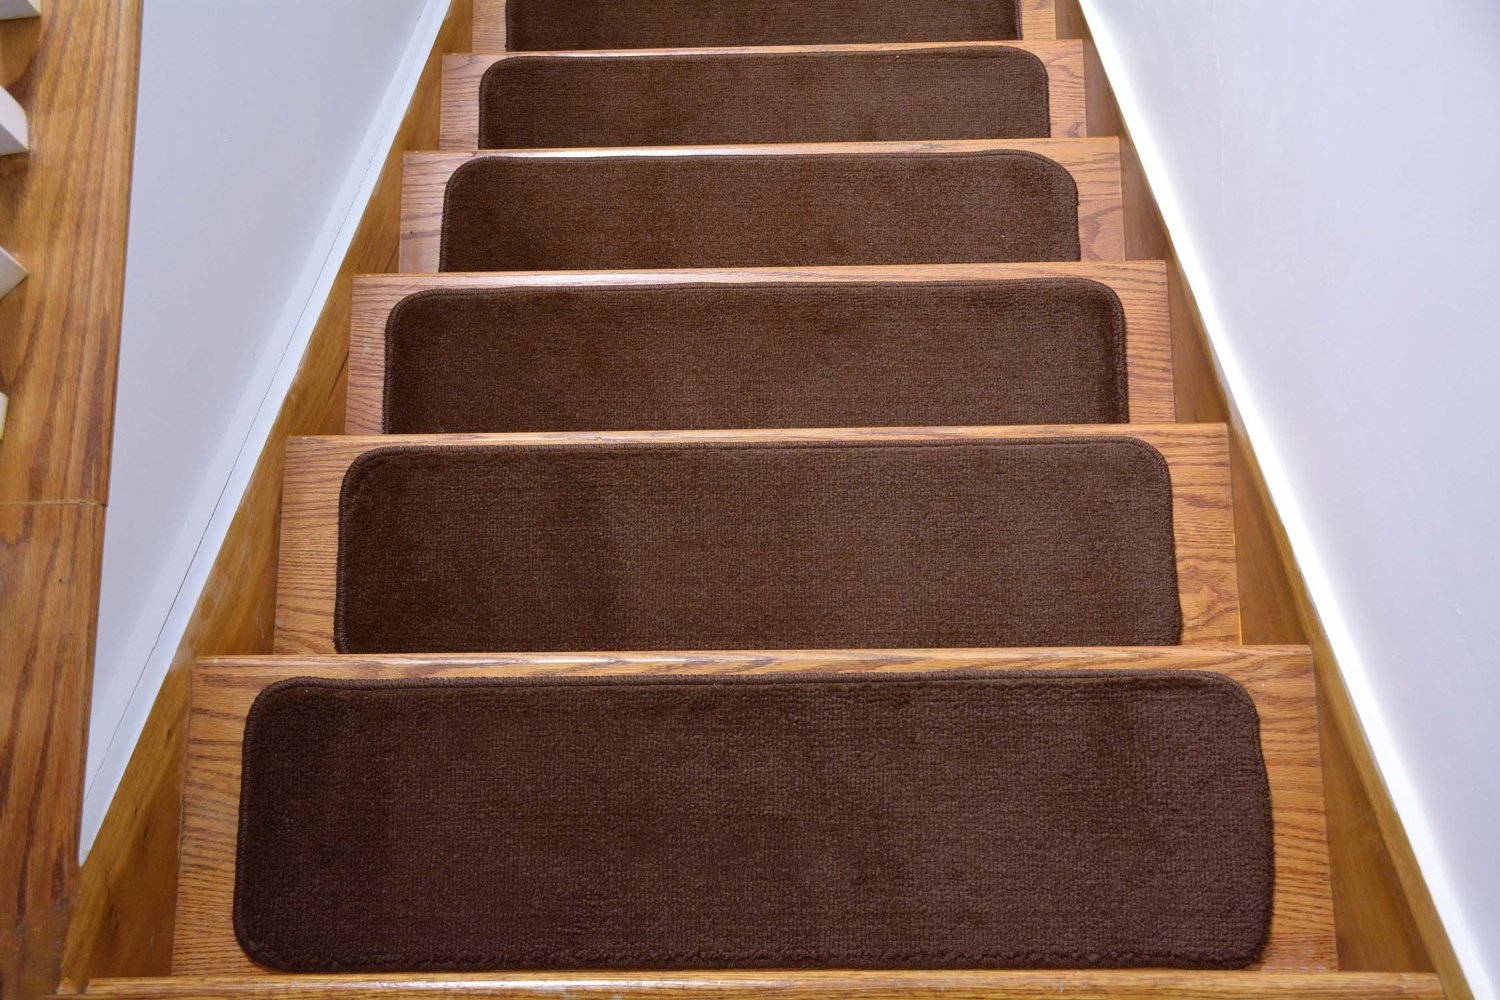 Comfy Collection Stair Tread Treads Indoor Skid Slip Resistant Throughout Skid Resistant Stair Treads (Image 5 of 15)